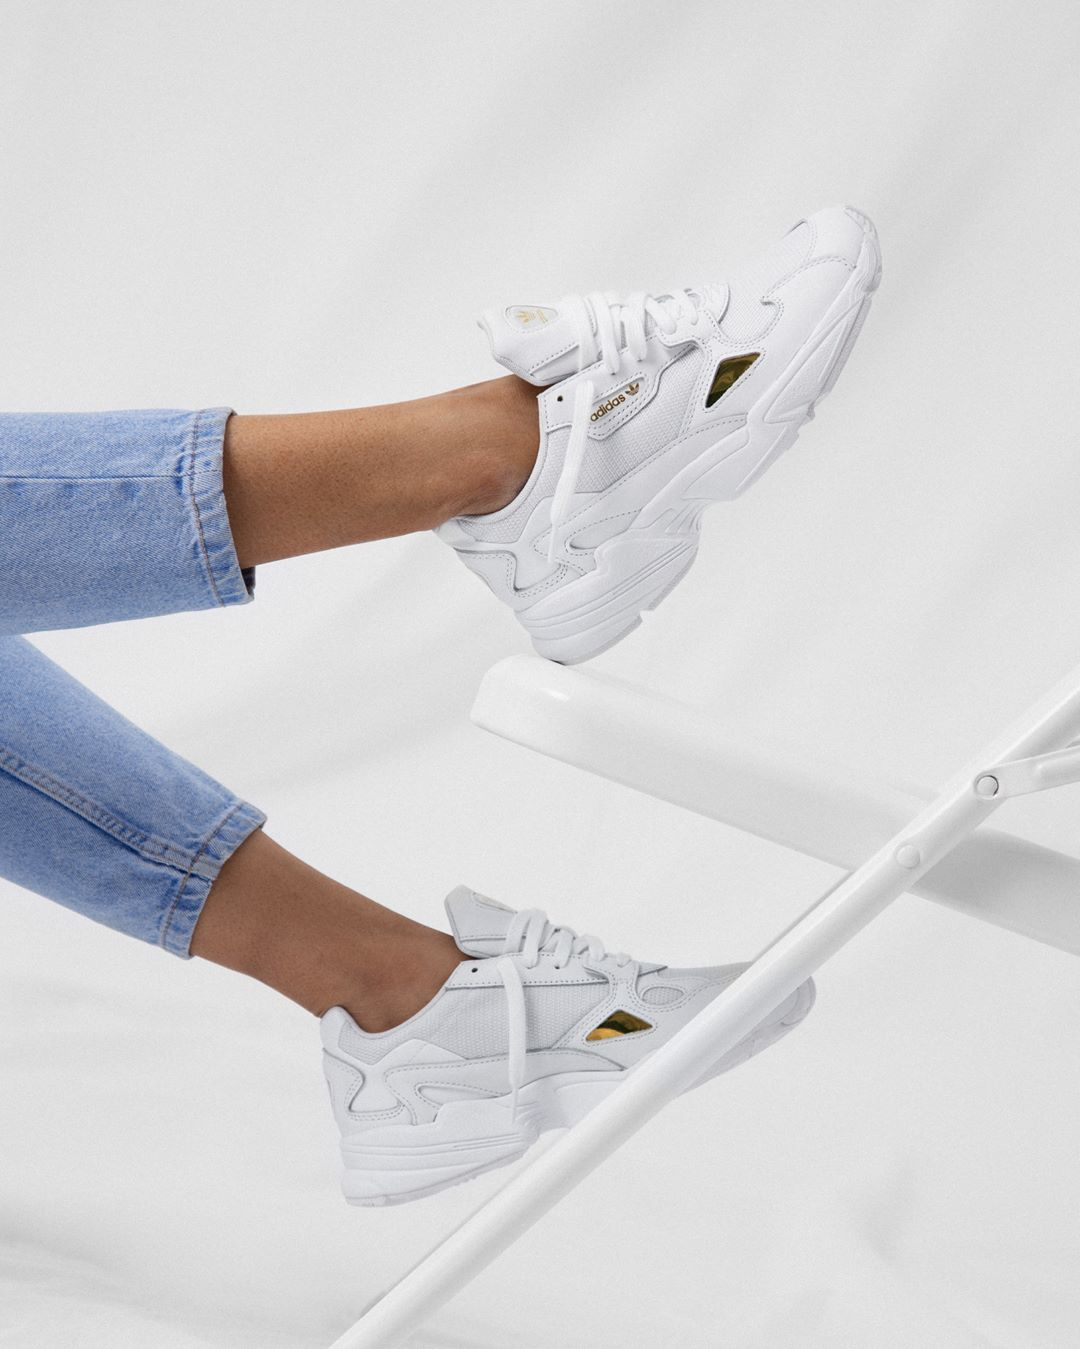 many fashionable new arrival a few days away Sneaker Trends 2019 - die angesagtesten Schuhe! | everysize Mag